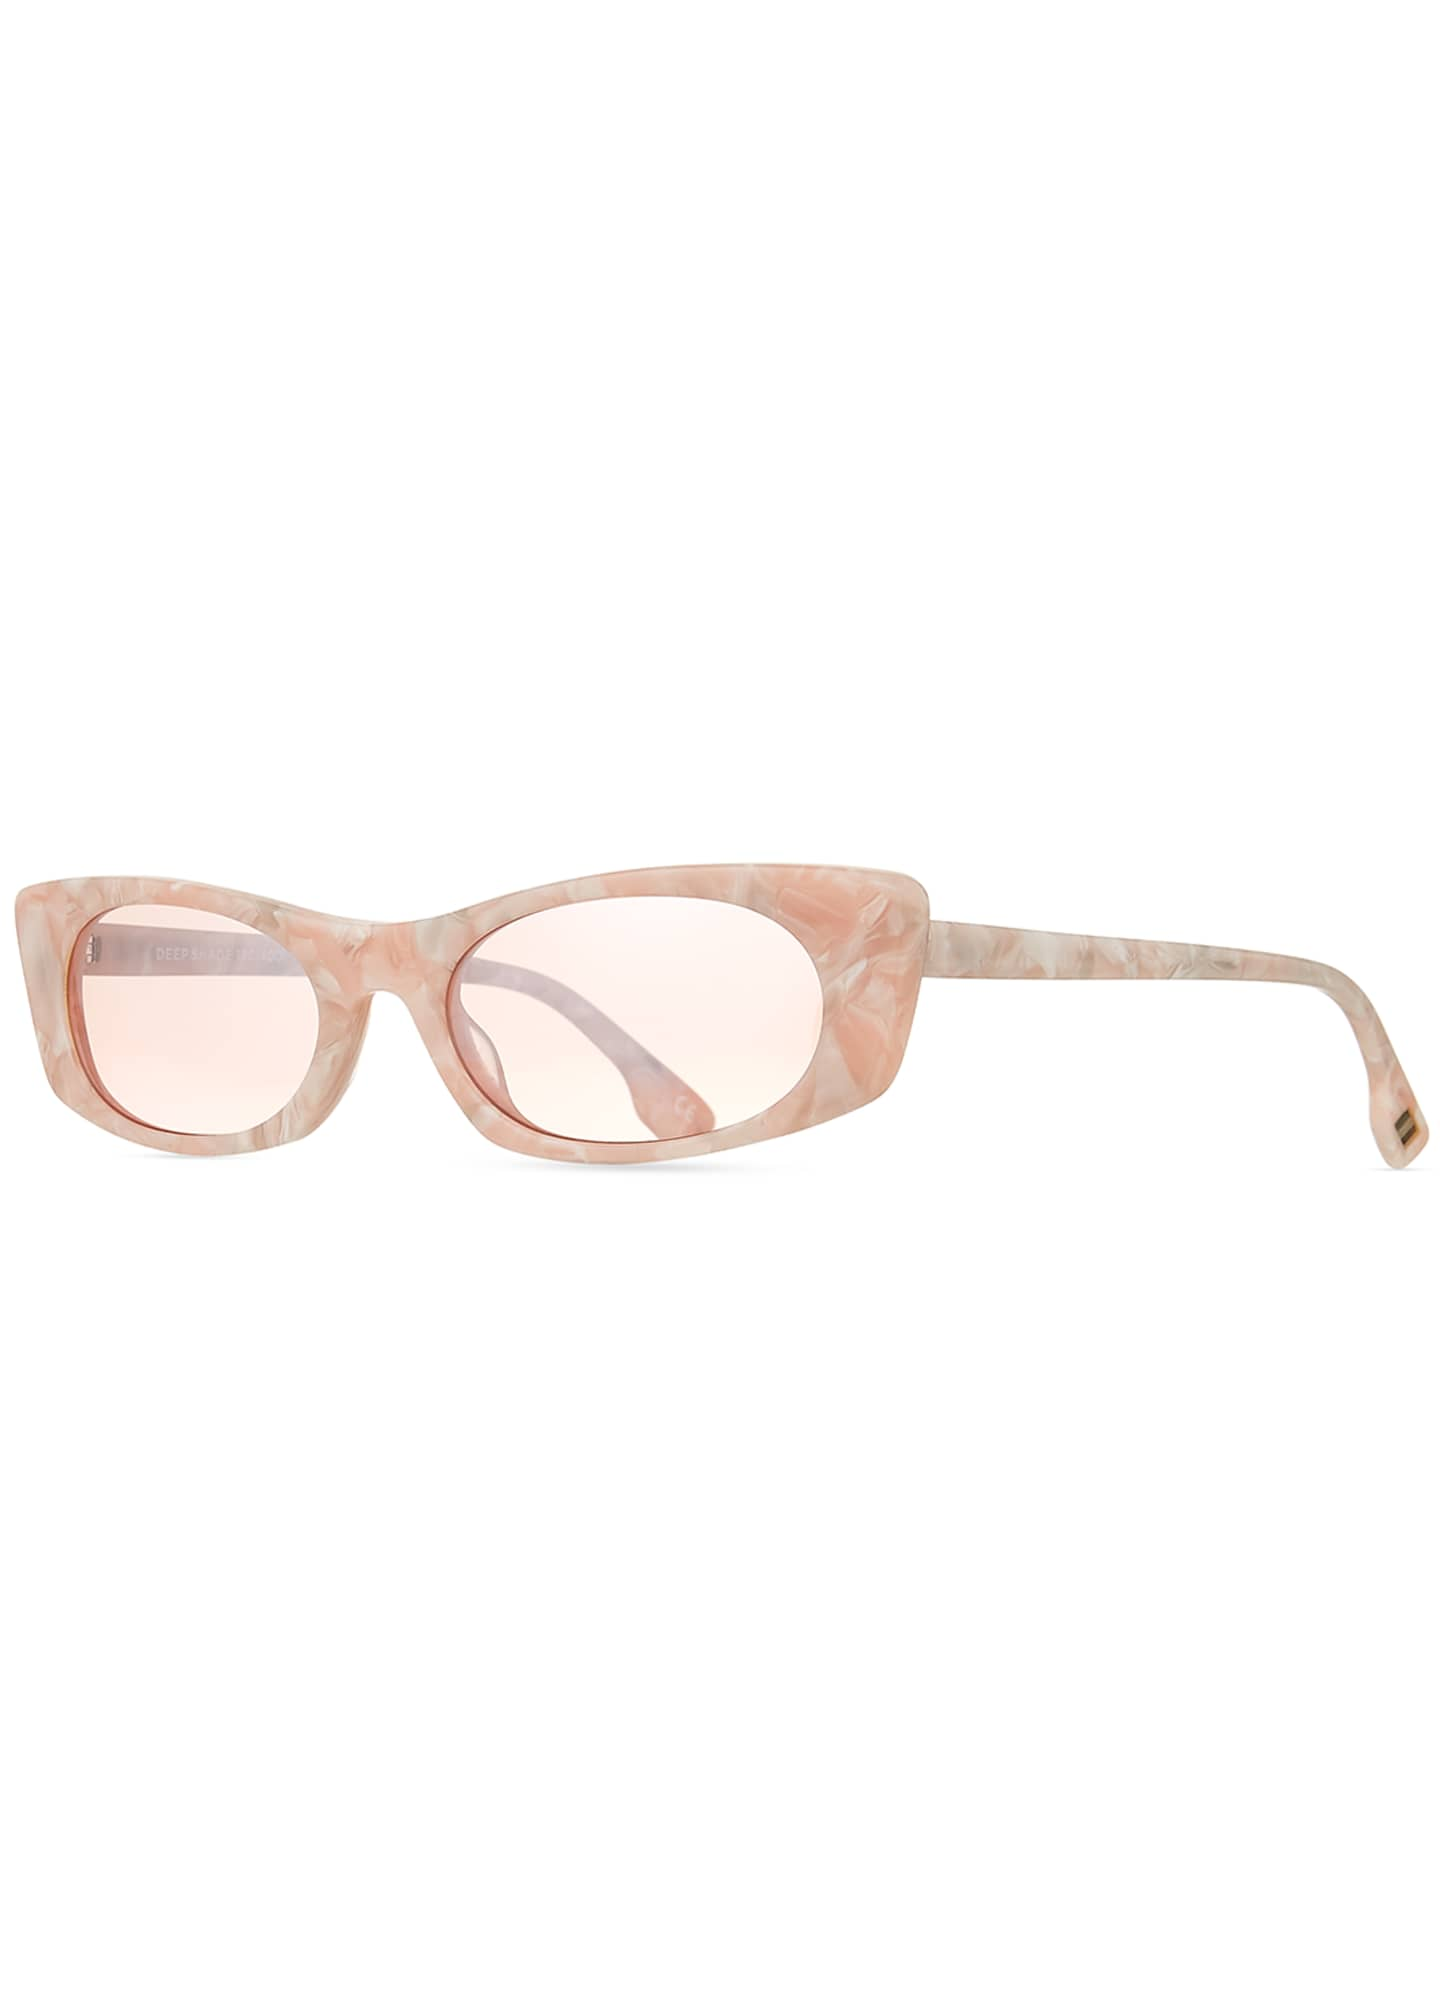 Le Specs Luxe Deep Shade Marbleized Acetate Cat-Eye